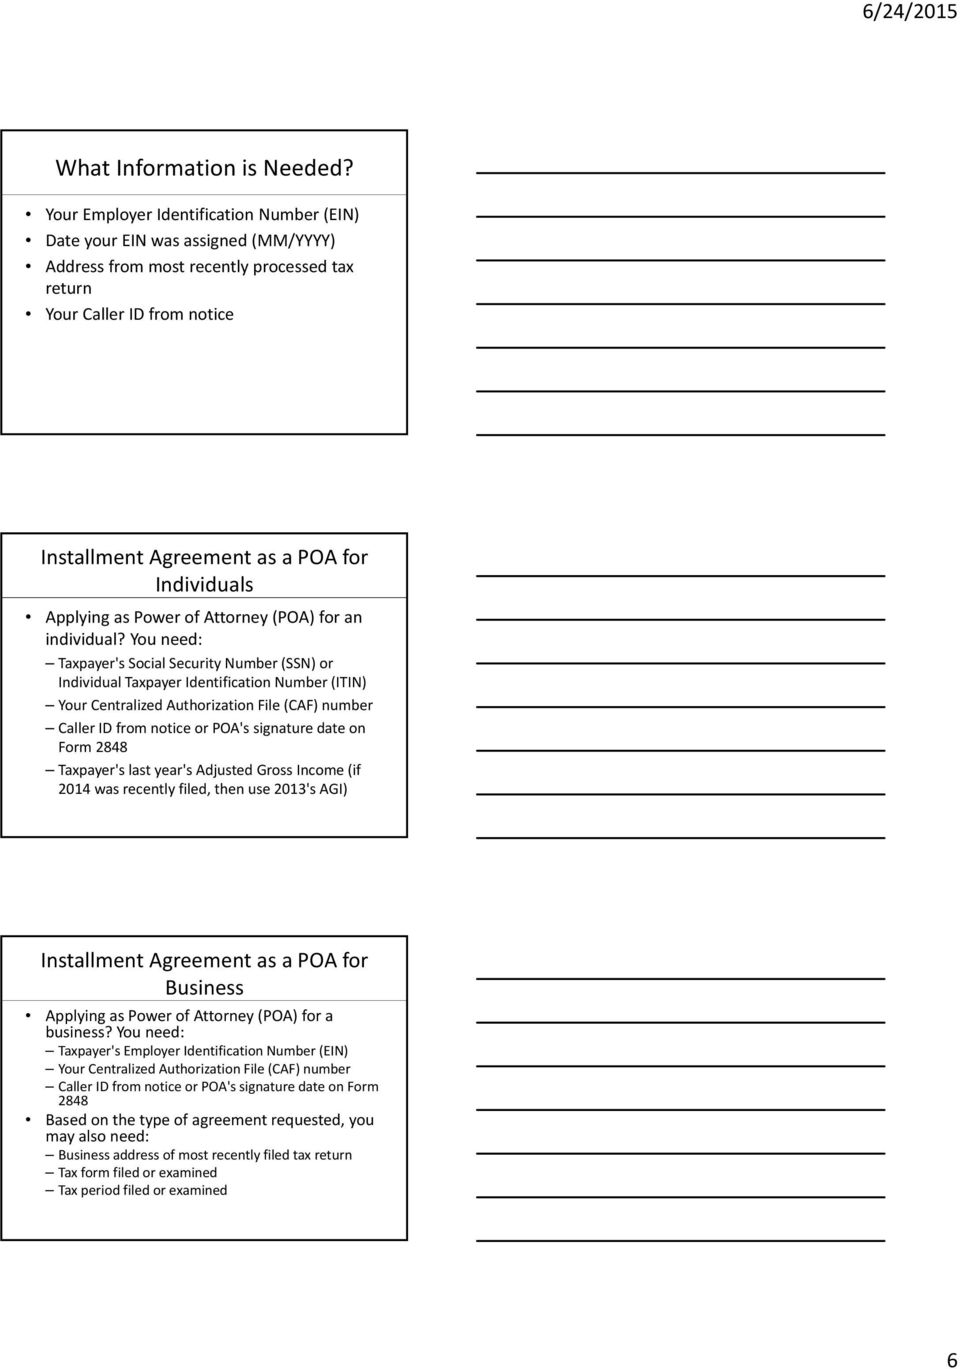 power of attorney form 4868  Federal Income Tax Payment Options - PDF Free Download